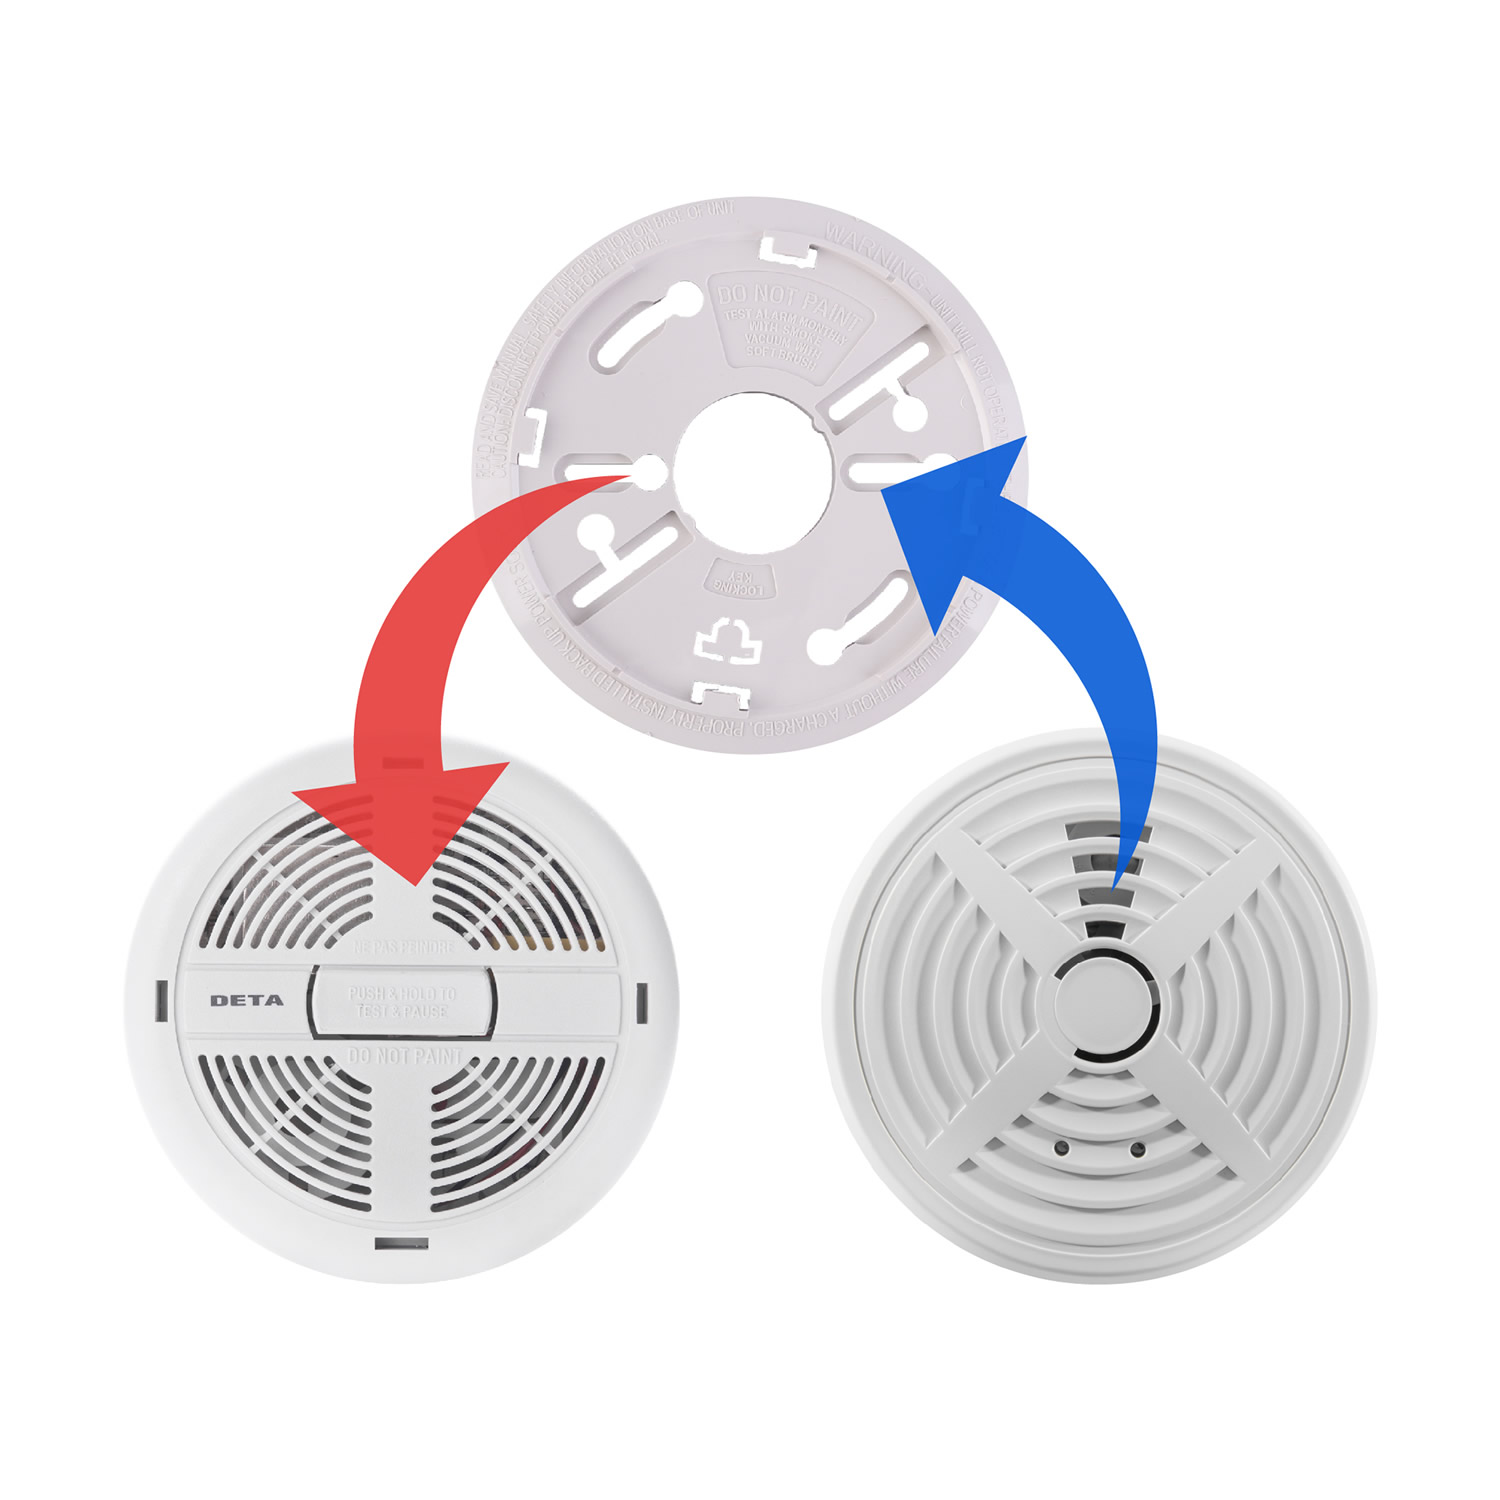 Replacement for the DETA 1111 mains powered ionisation smoke alarm